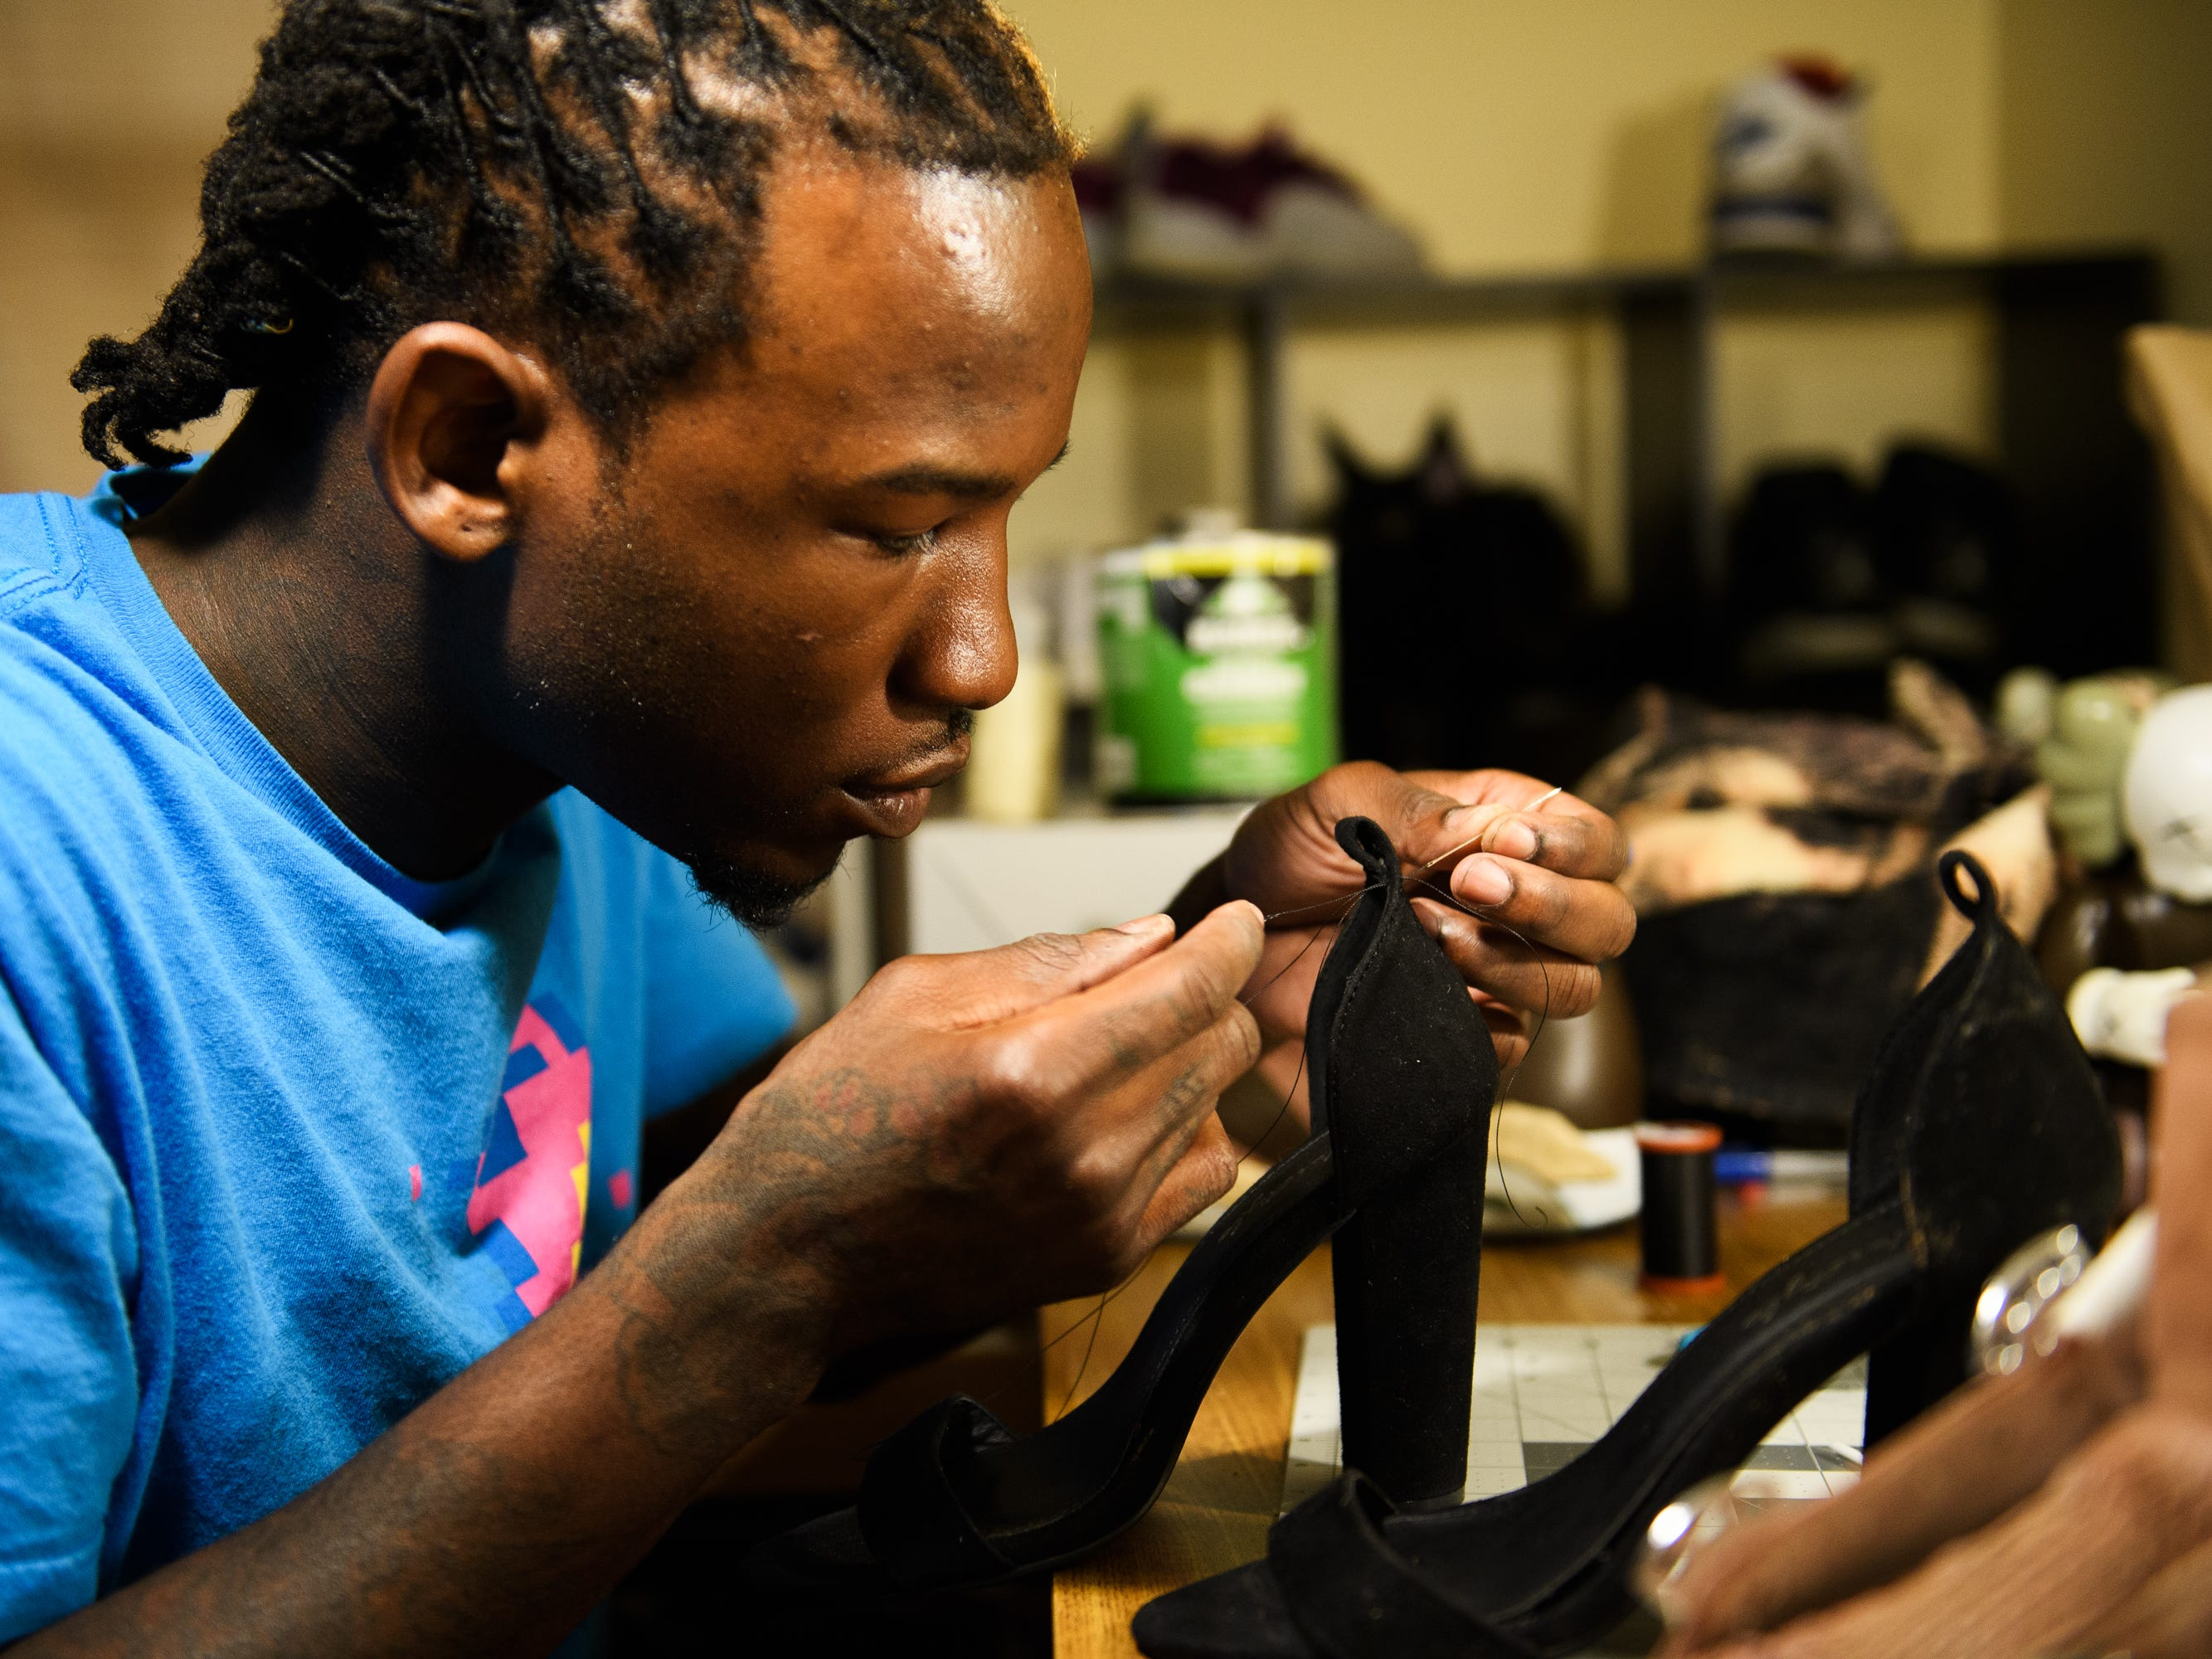 Isiah Kinloch repairs the back heel strap of a pair of shoes for a friend. During an incident that has changed his life, Kinloch fought off a robber who barged into his apartment and attacked him. The defining moment: police found and seized his money while he was at the hospital being treated for his injuries.